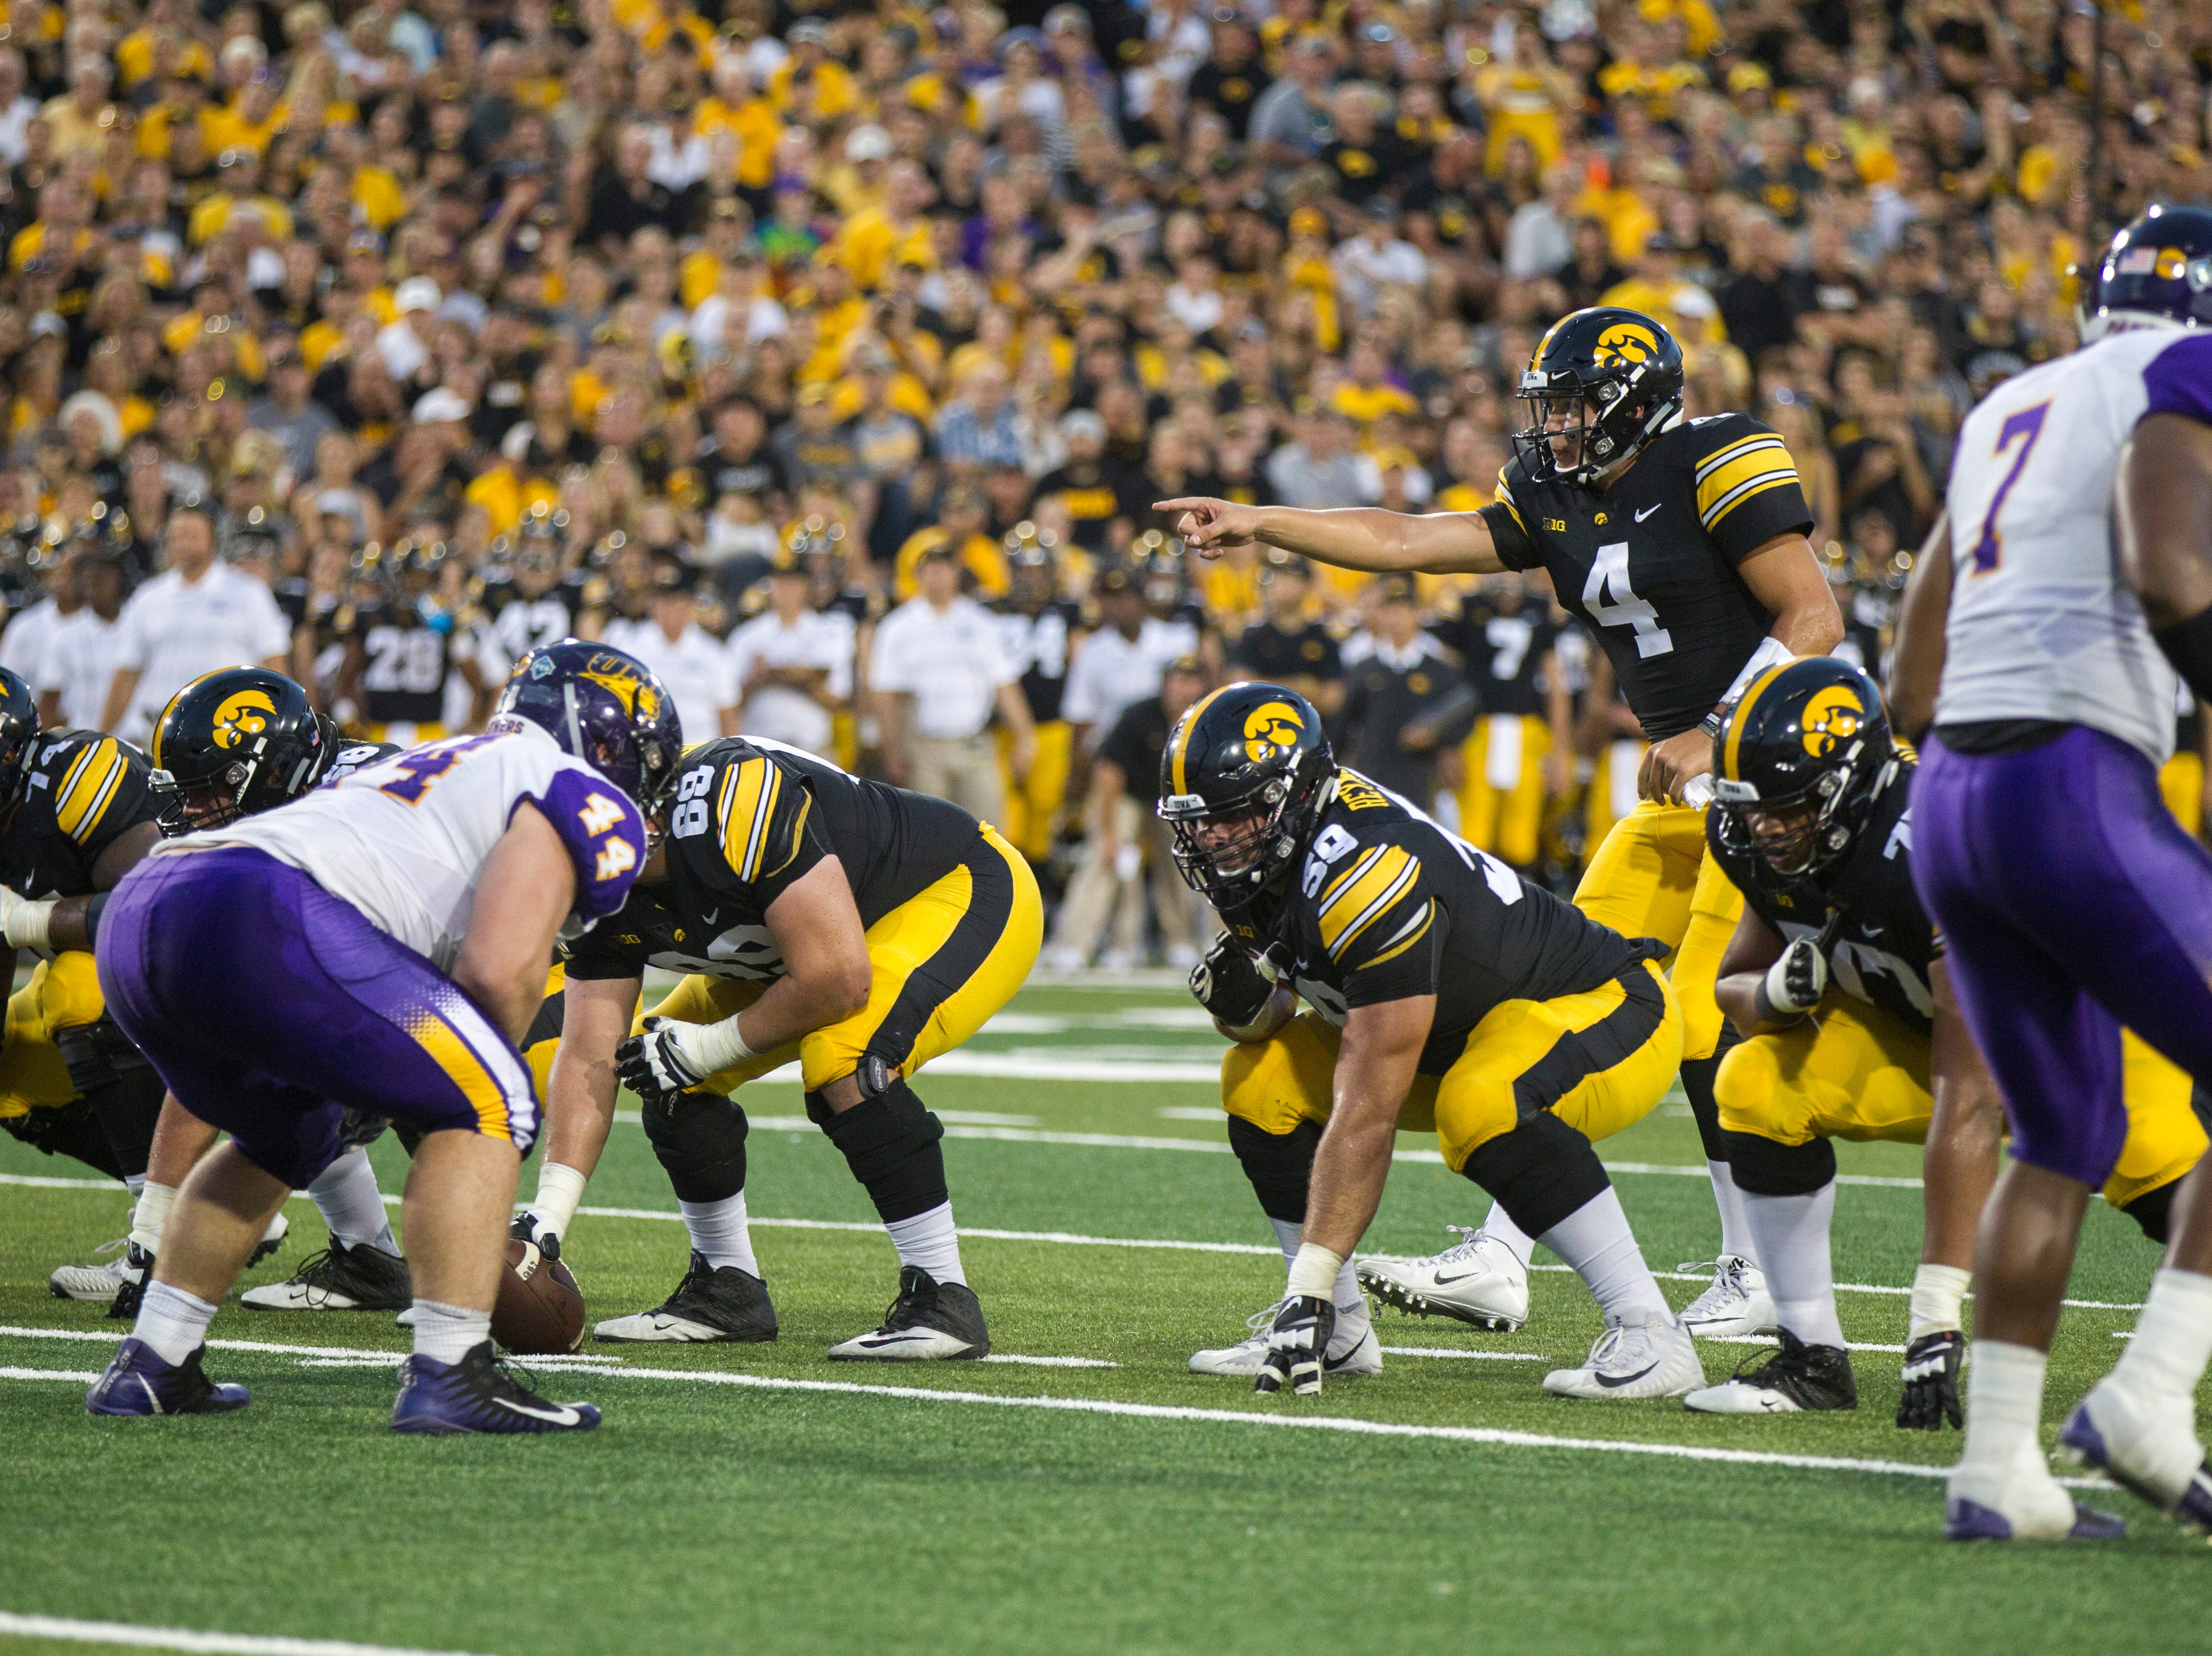 Iowa quarterback Nate Stanley (4) gestures at the line during an NCAA football game on Saturday, Sept. 15, 2018, at Kinnick Stadium in Iowa City.